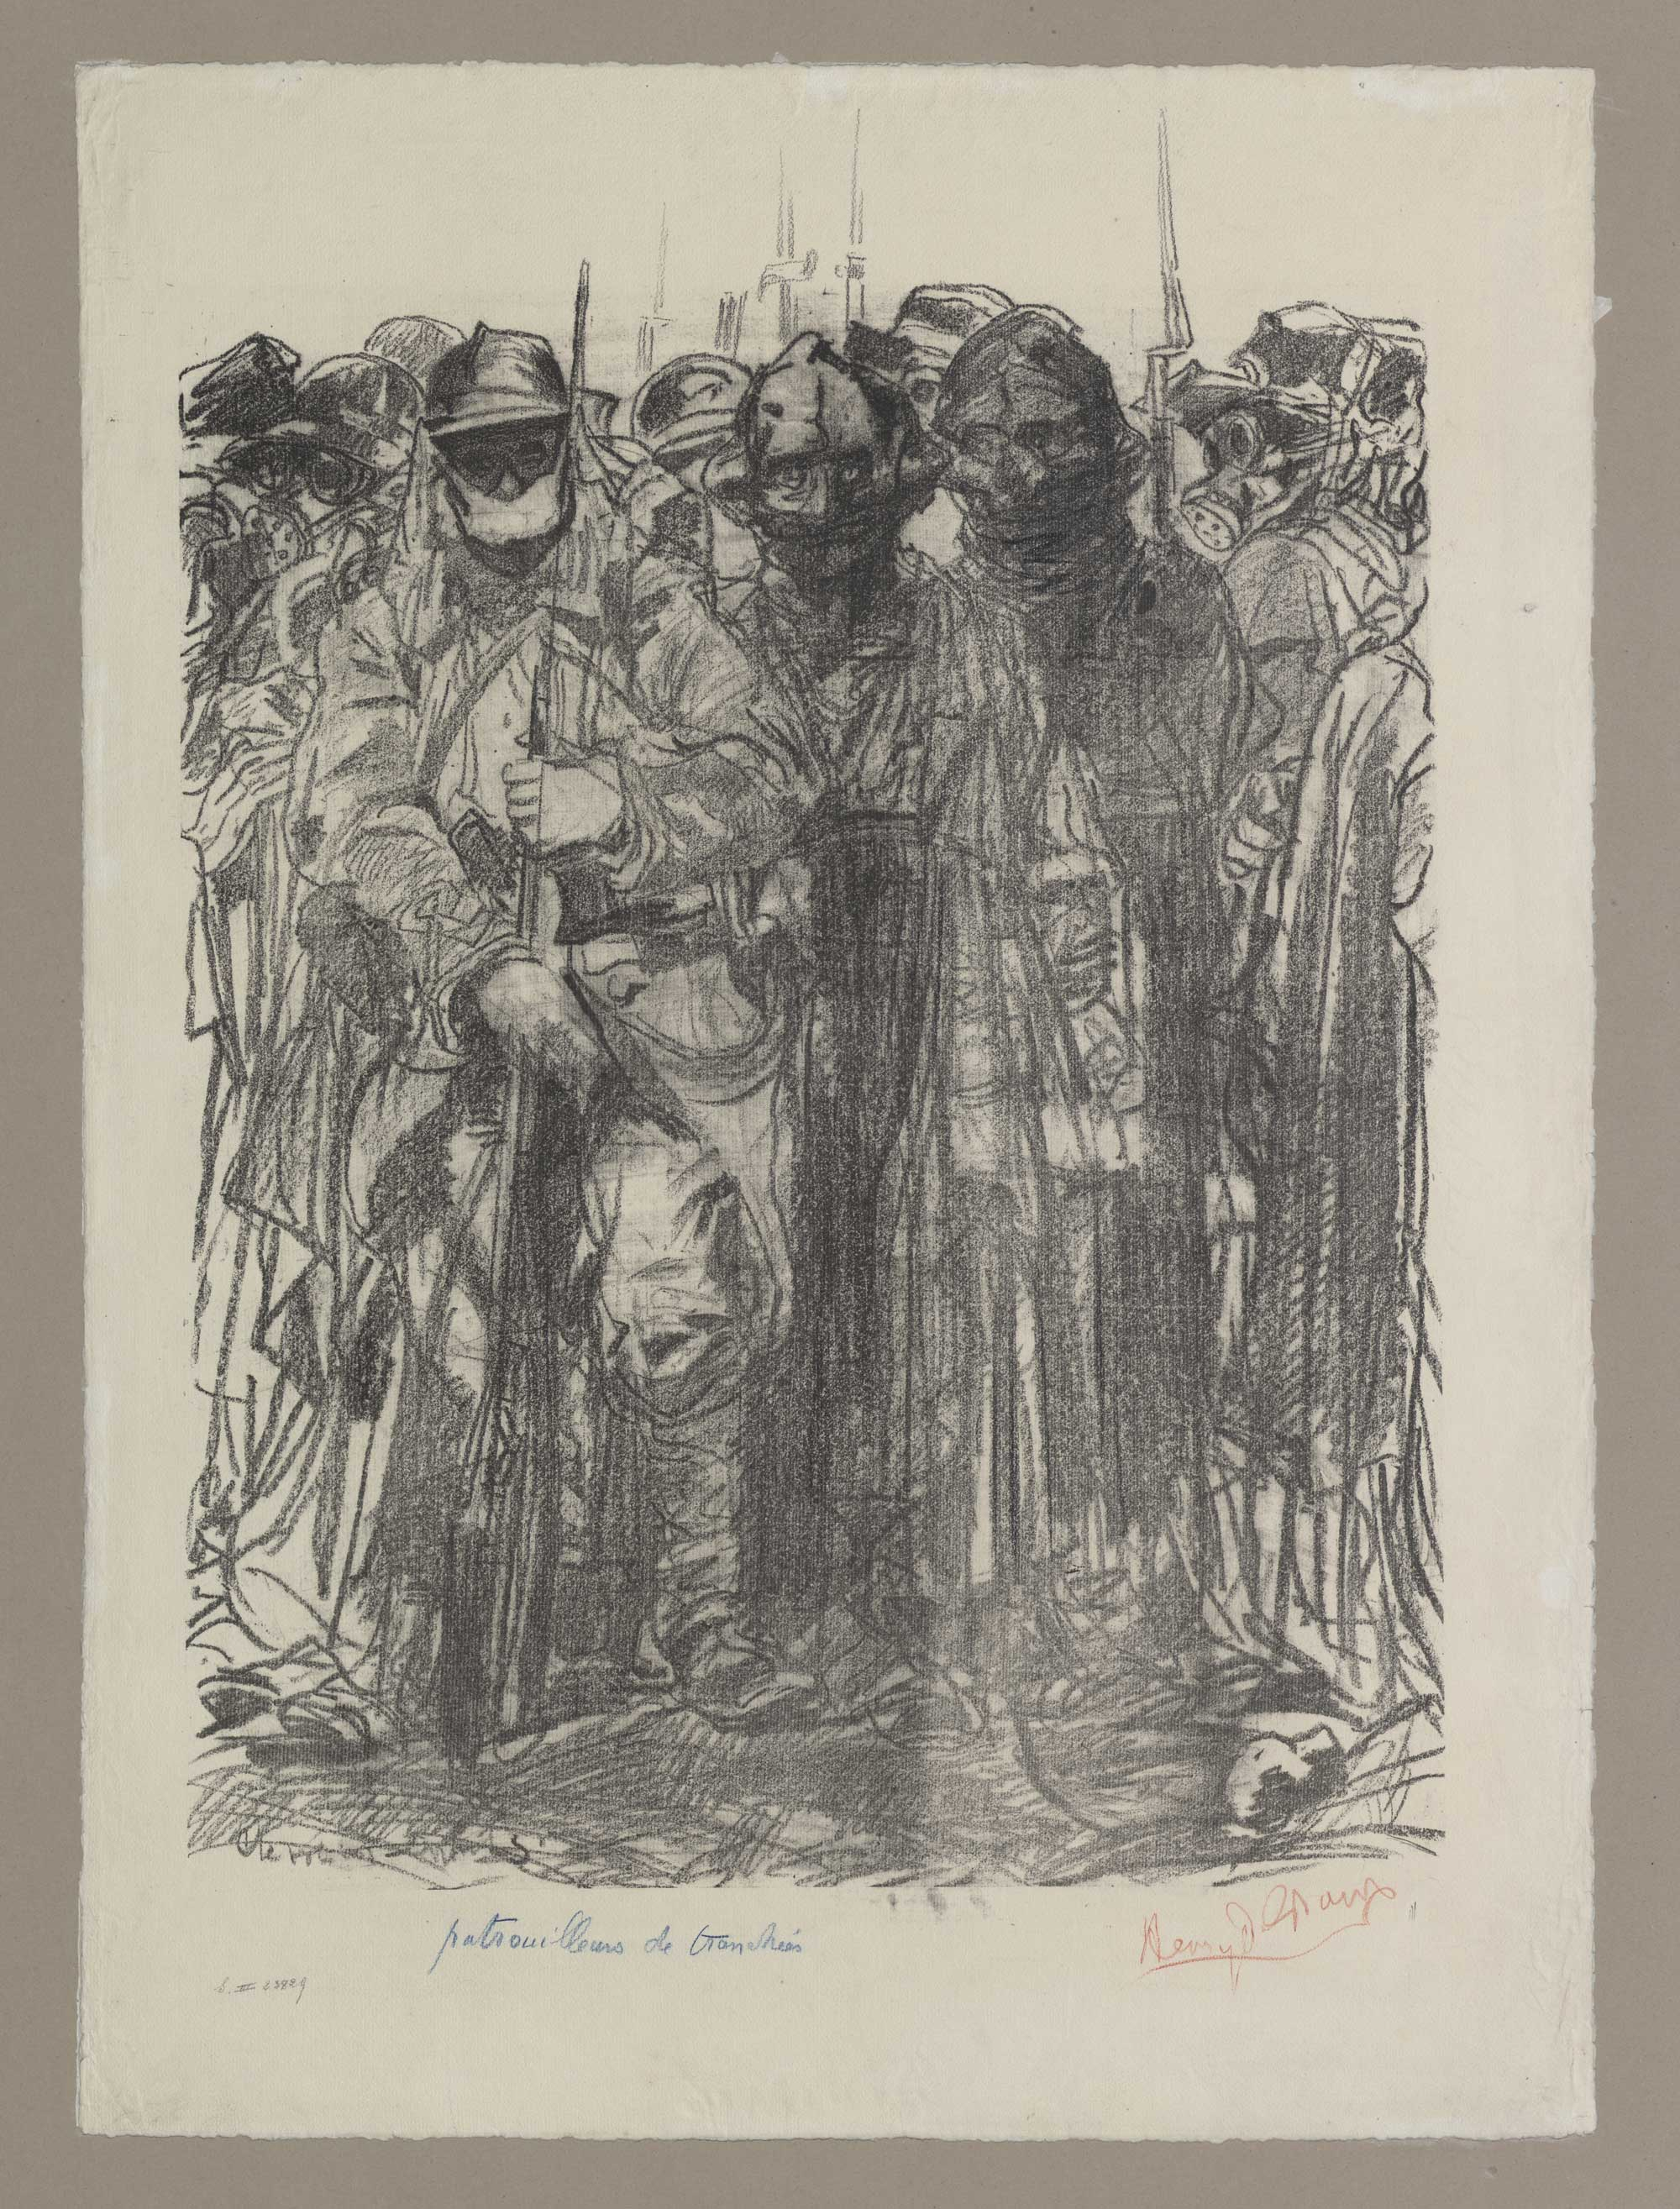 Lithograph showing soldiers with gas masks, by Belgian symbolist painter and sculptor Henry de Groux (1886-1930).